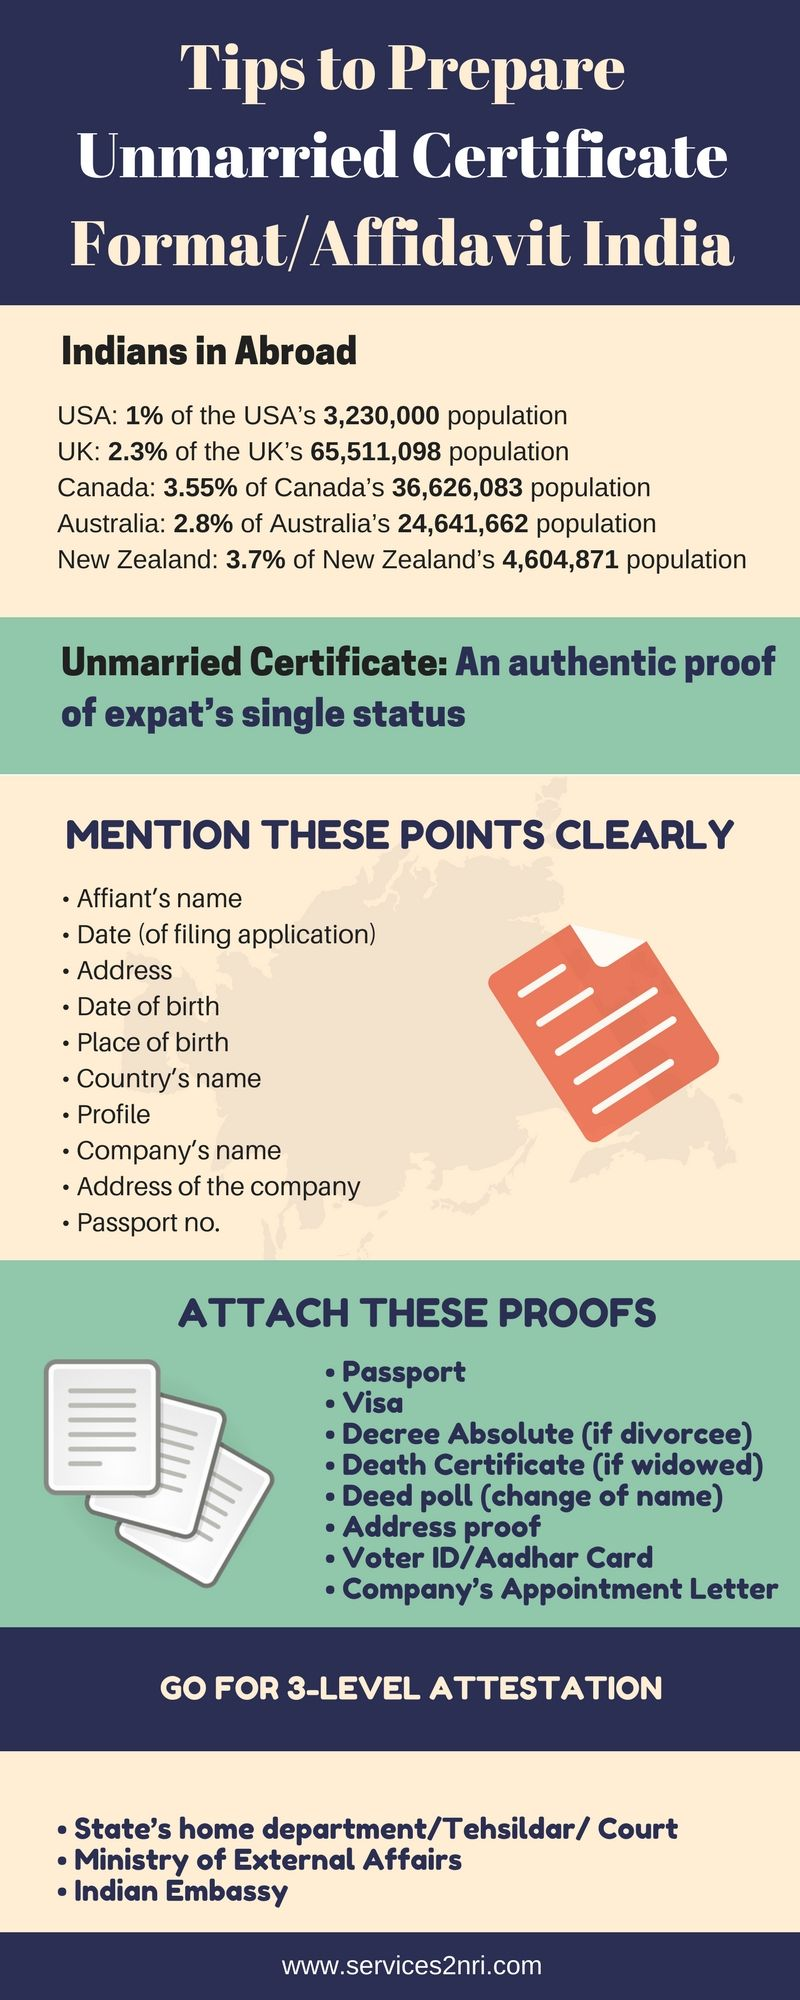 Tips to prepare unmarried certificate formataffidavit india tips to prepare unmarried certificate formataffidavit india yelopaper Image collections